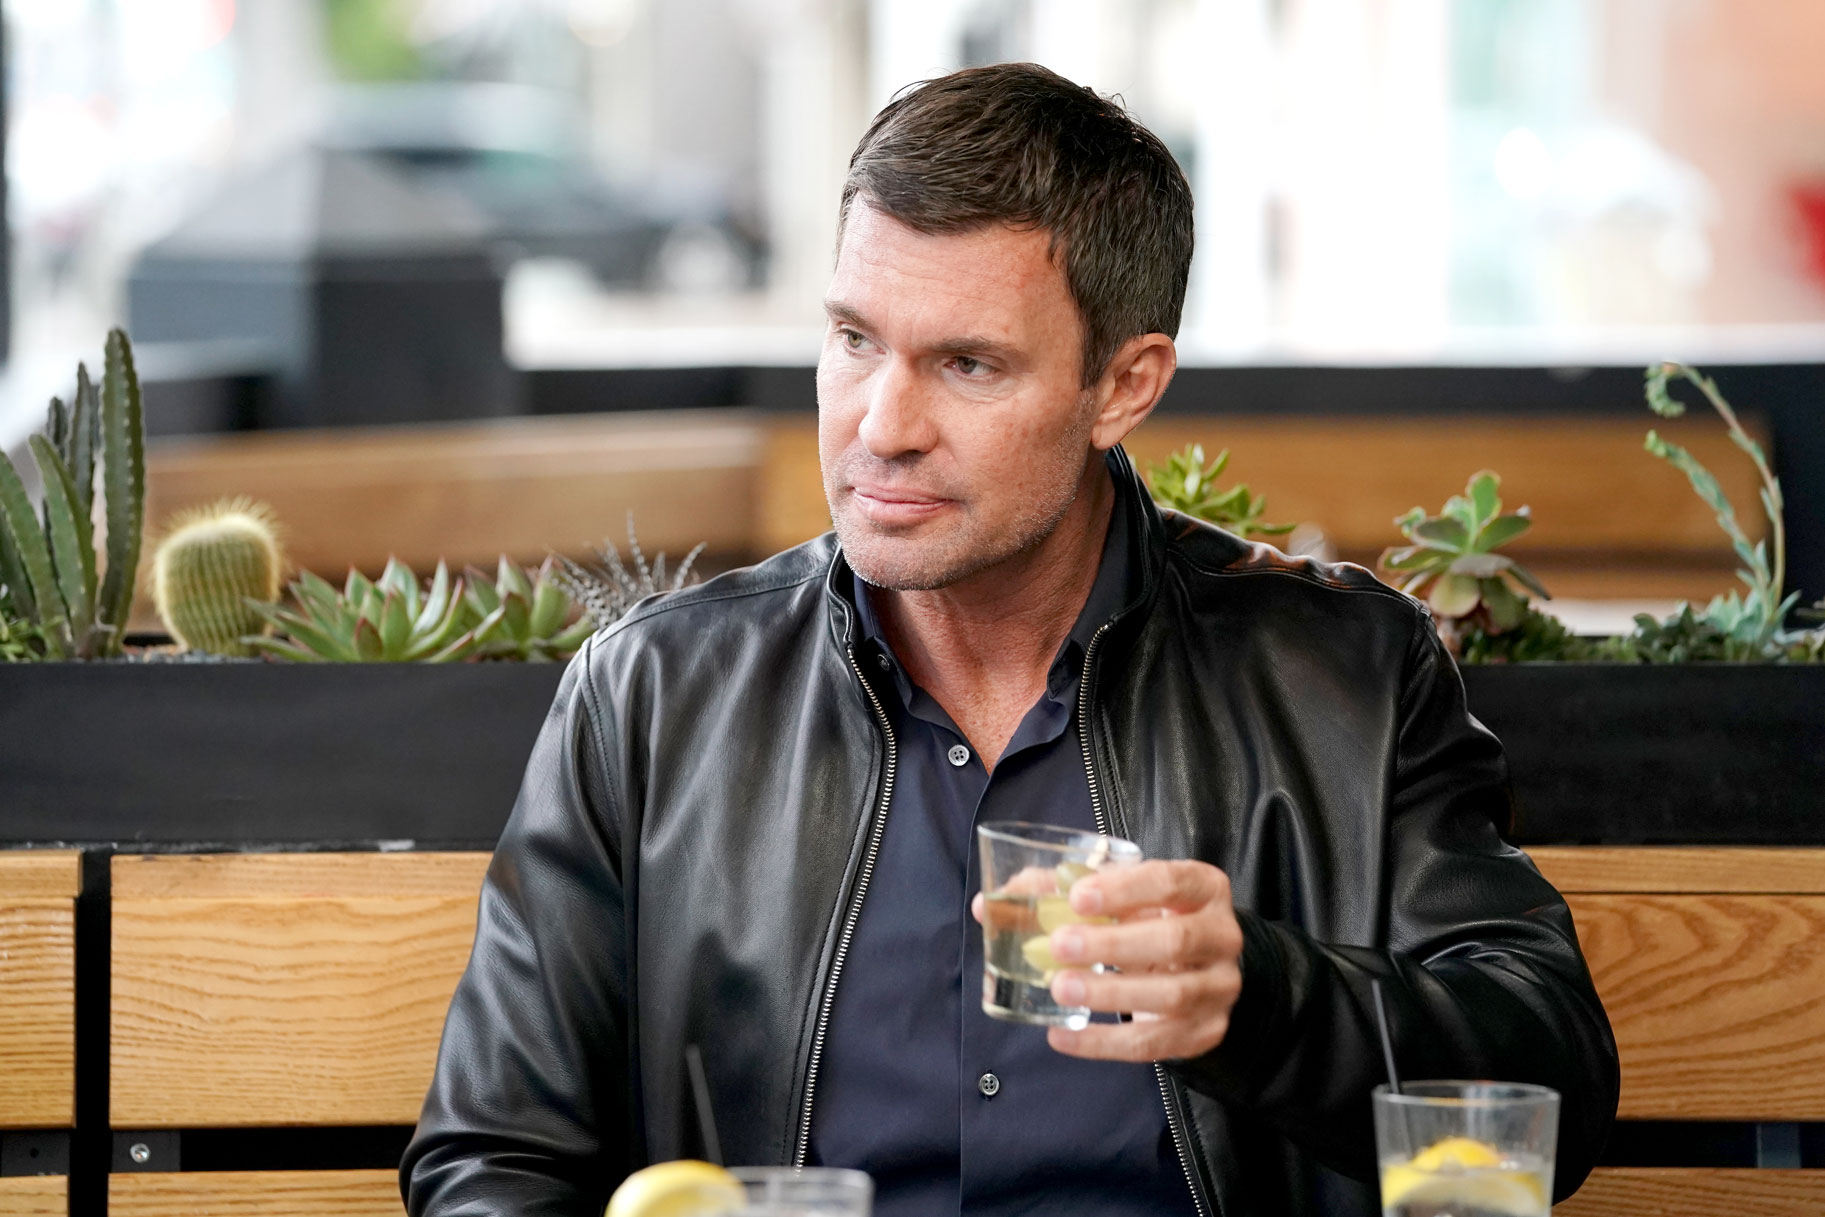 Jeff Lewis at a restaurant